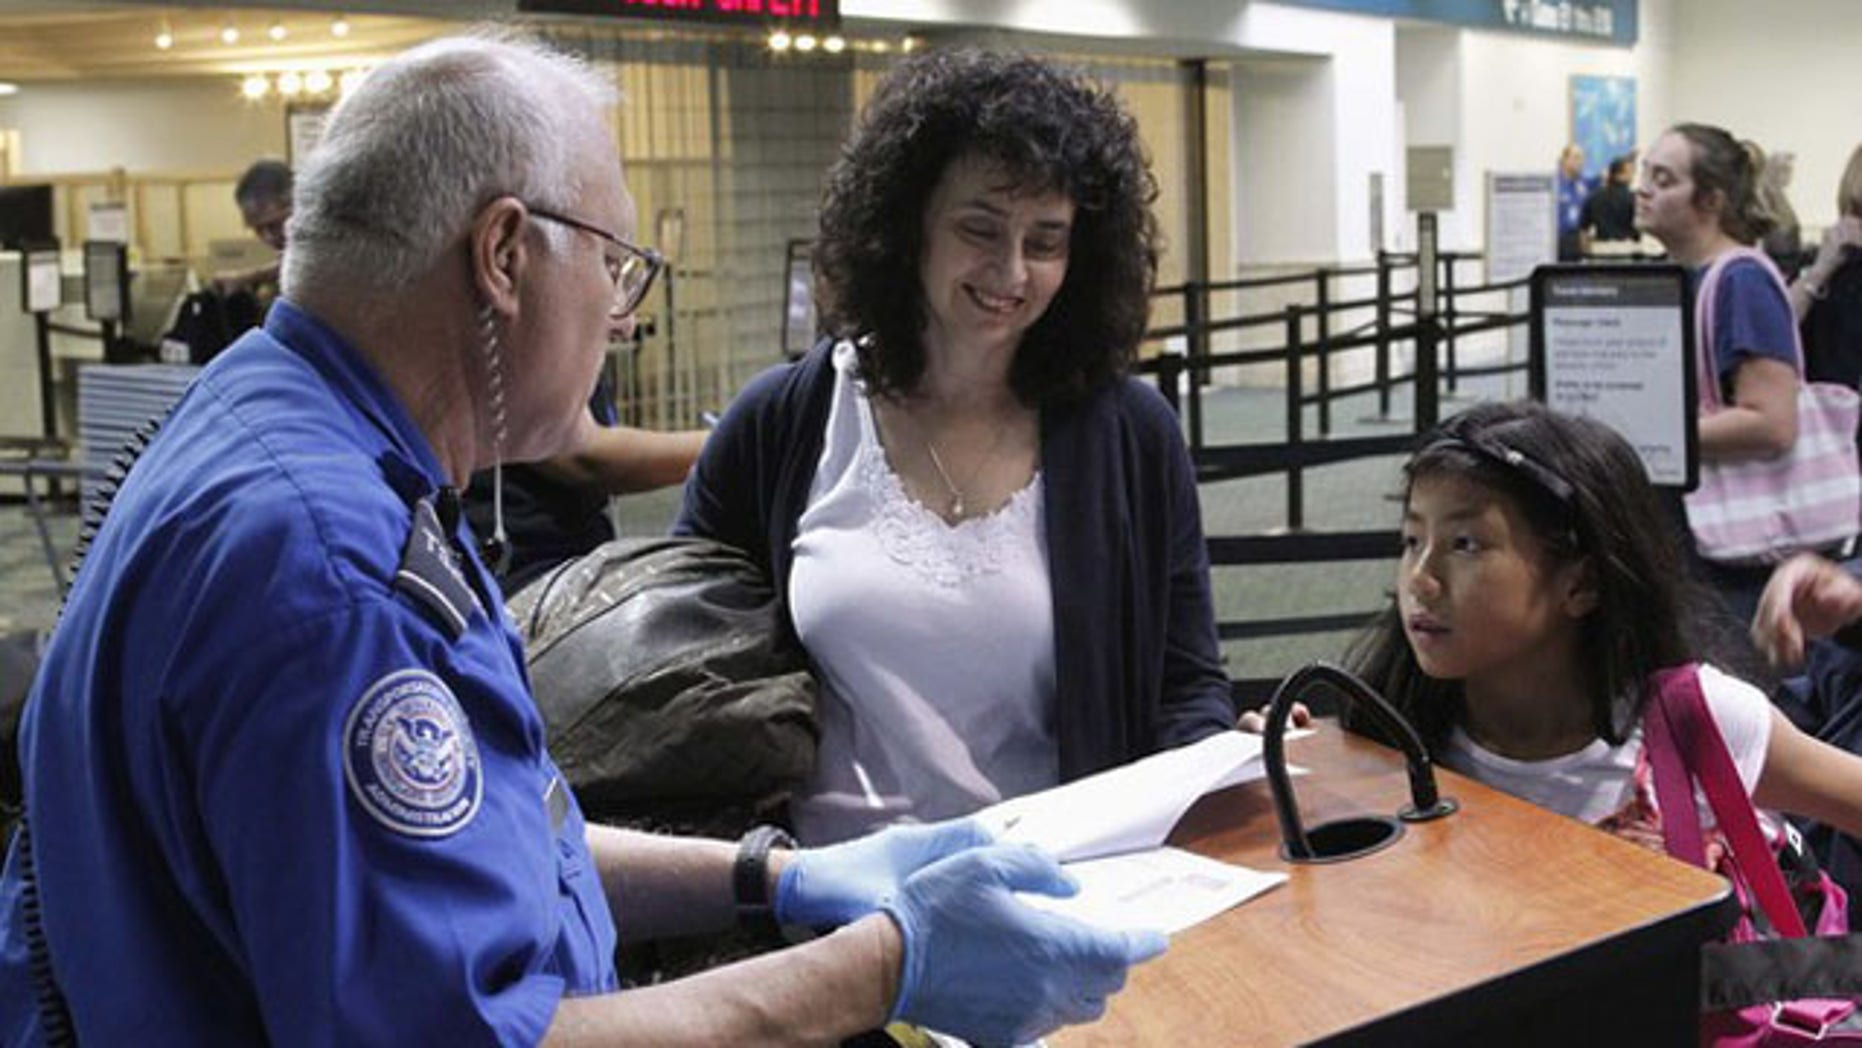 Passengers provide documents at a security checkpoint operated by the Transportation Security Administration at Fort Lauderdale-Hollywood International Airport in Fort Lauderdale, Fla., Nov. 23, 2010.